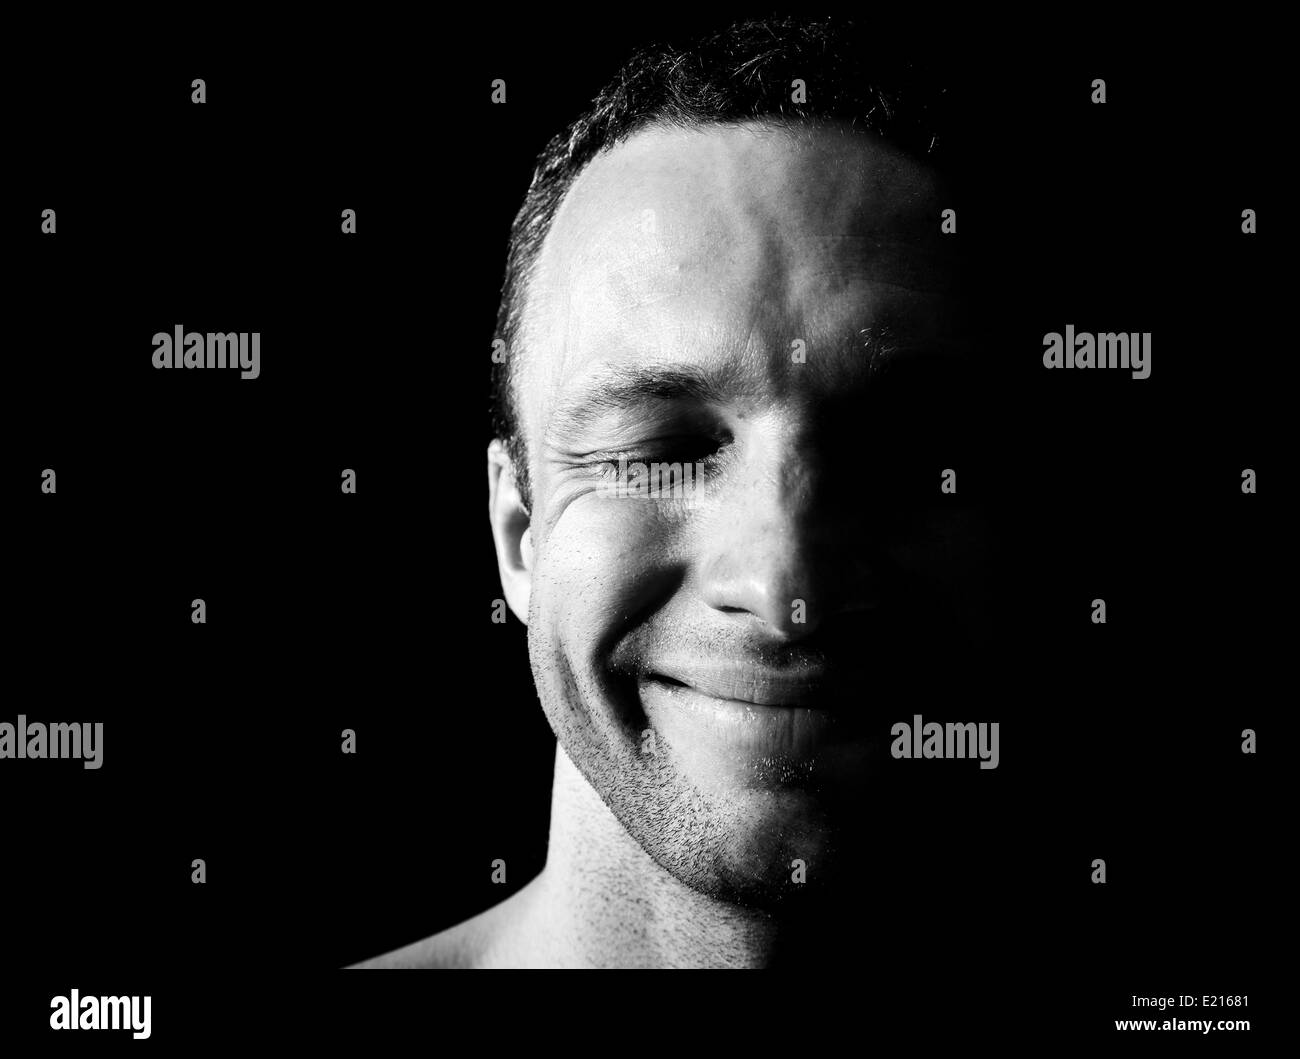 Young smiling Caucasian man portrait on black background - Stock Image